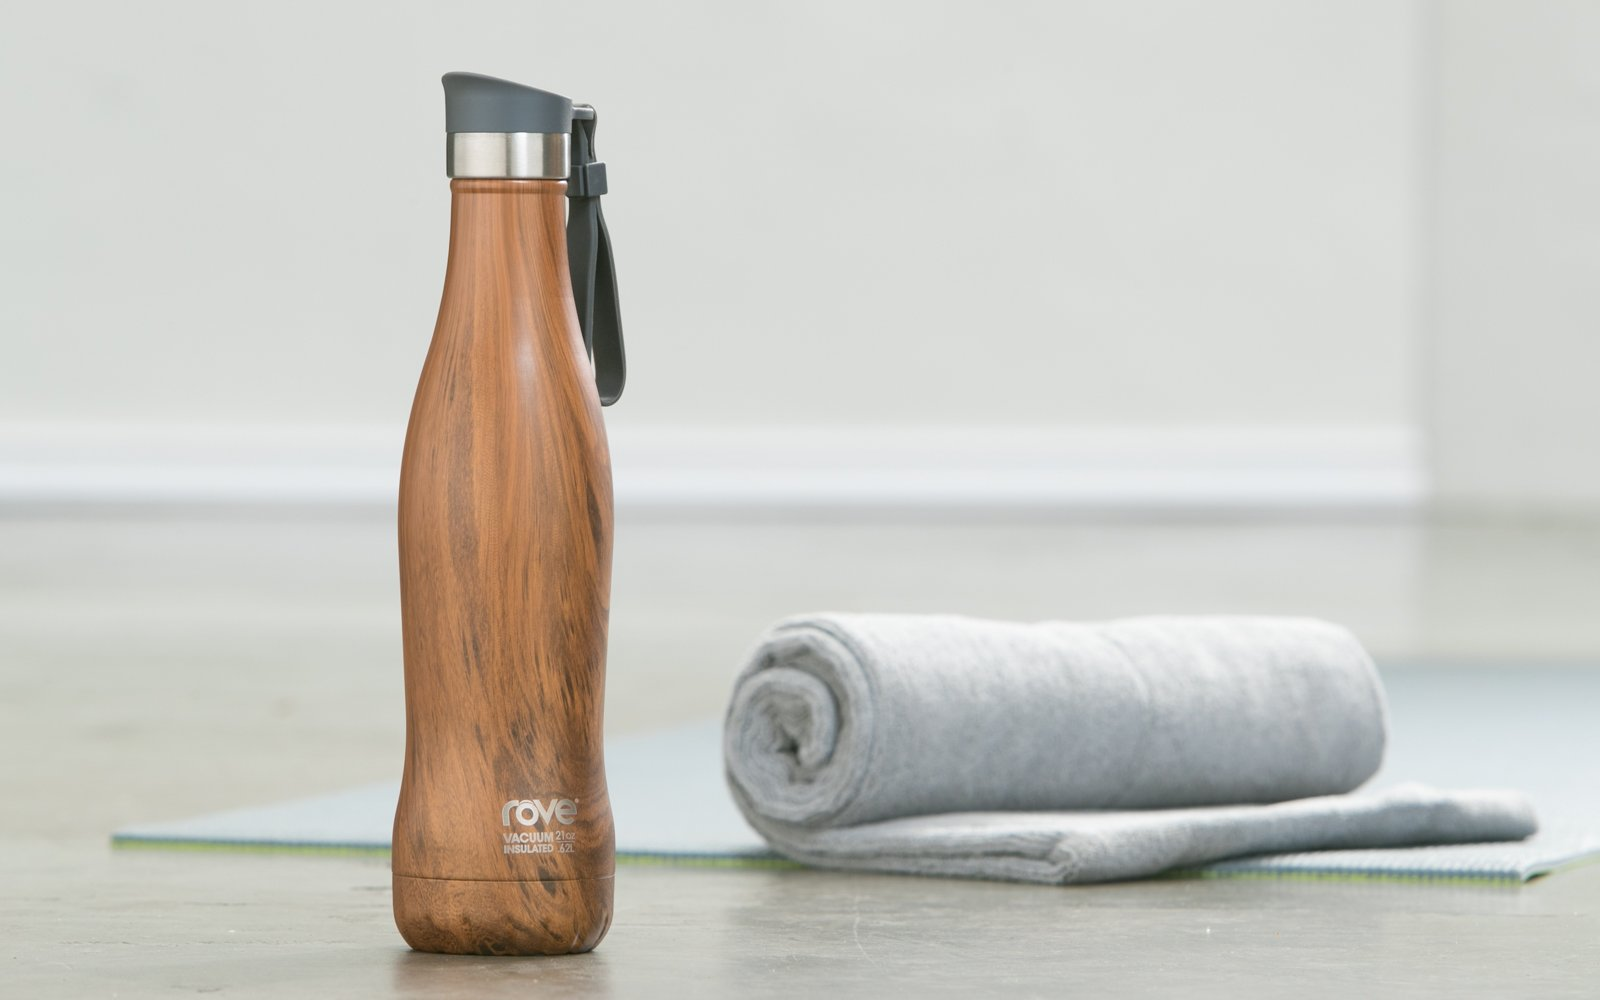 ROVE 21oz Double Wall Stainless Steel Vacuum Insulated Bottle With Push Lid And Carabineer - Let's Go Wood (Brown)